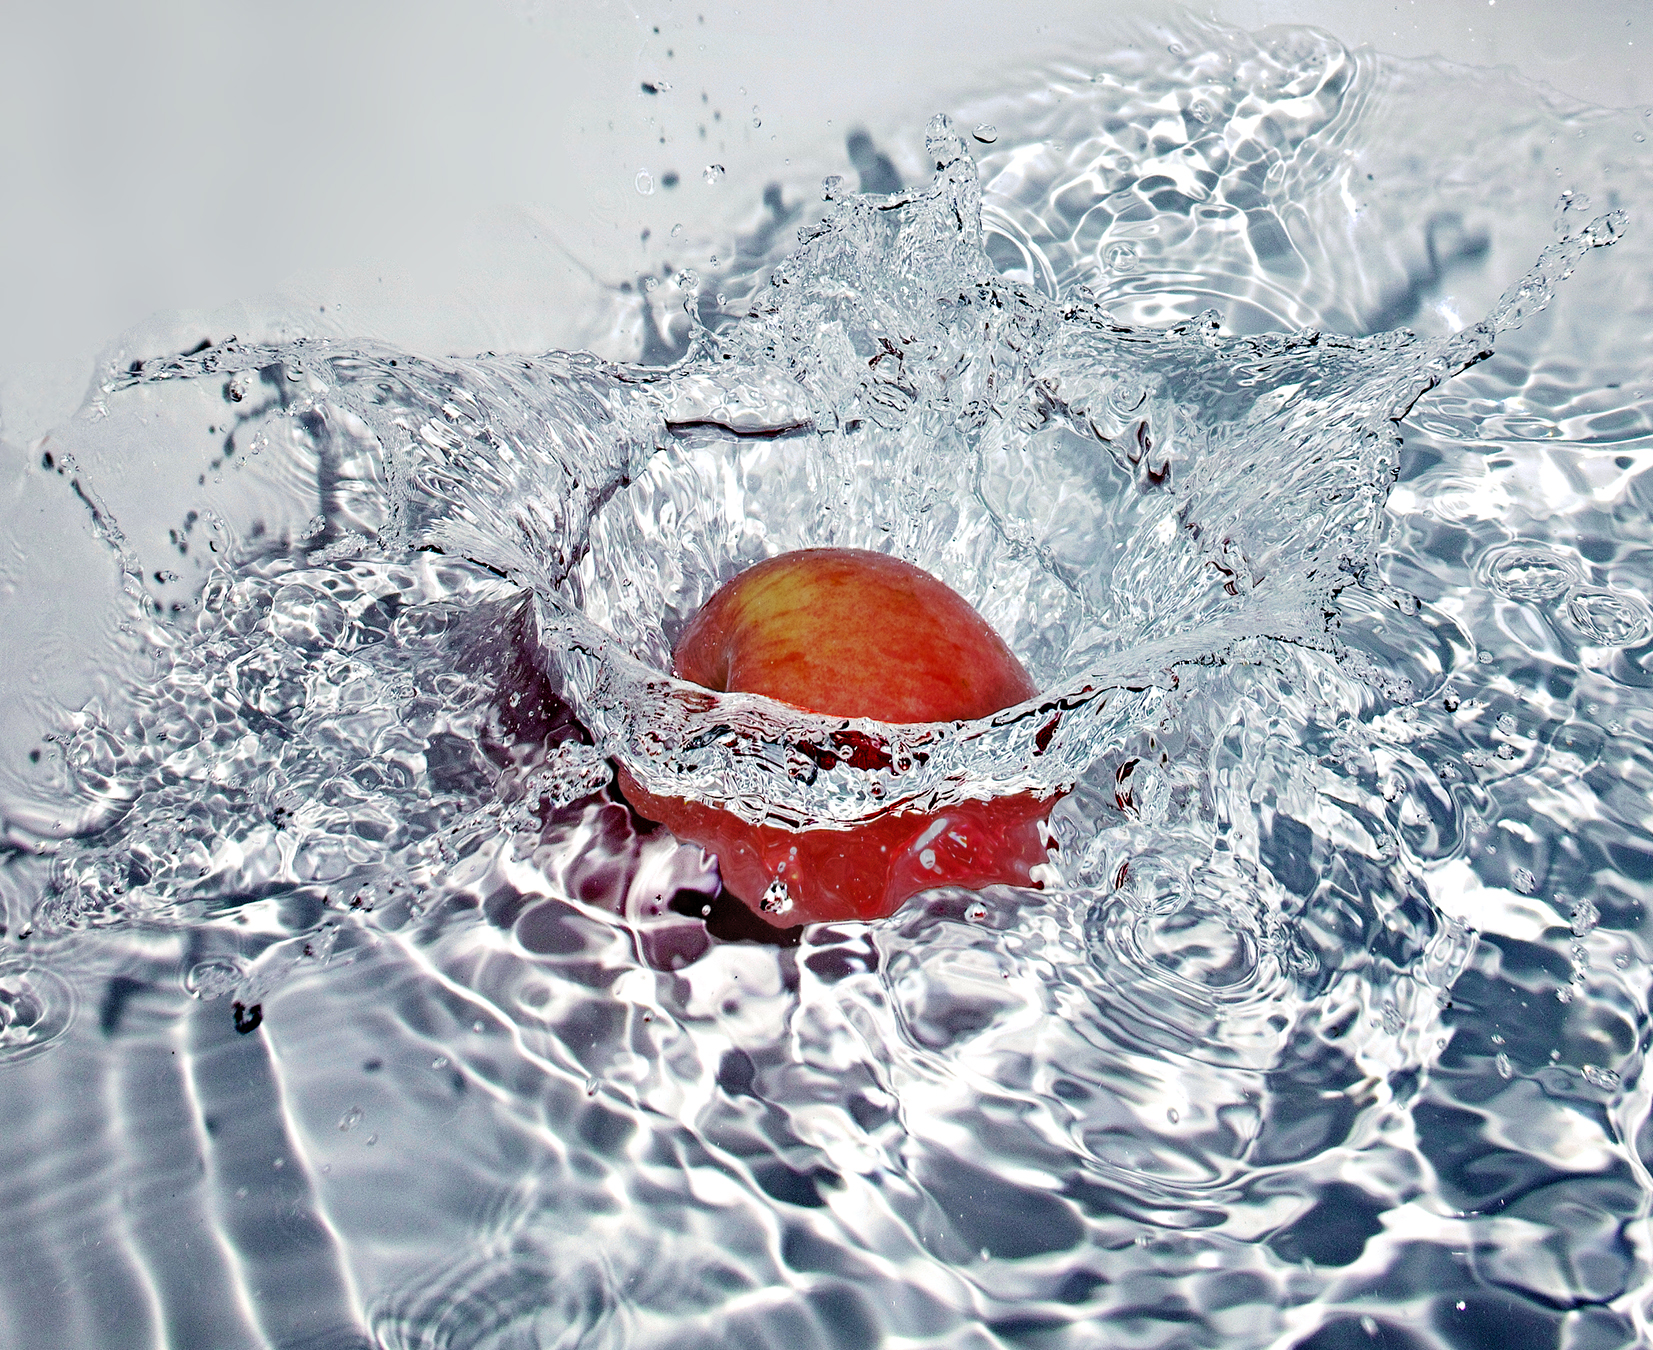 """.."""" Then the apple splashed.. """"..."""